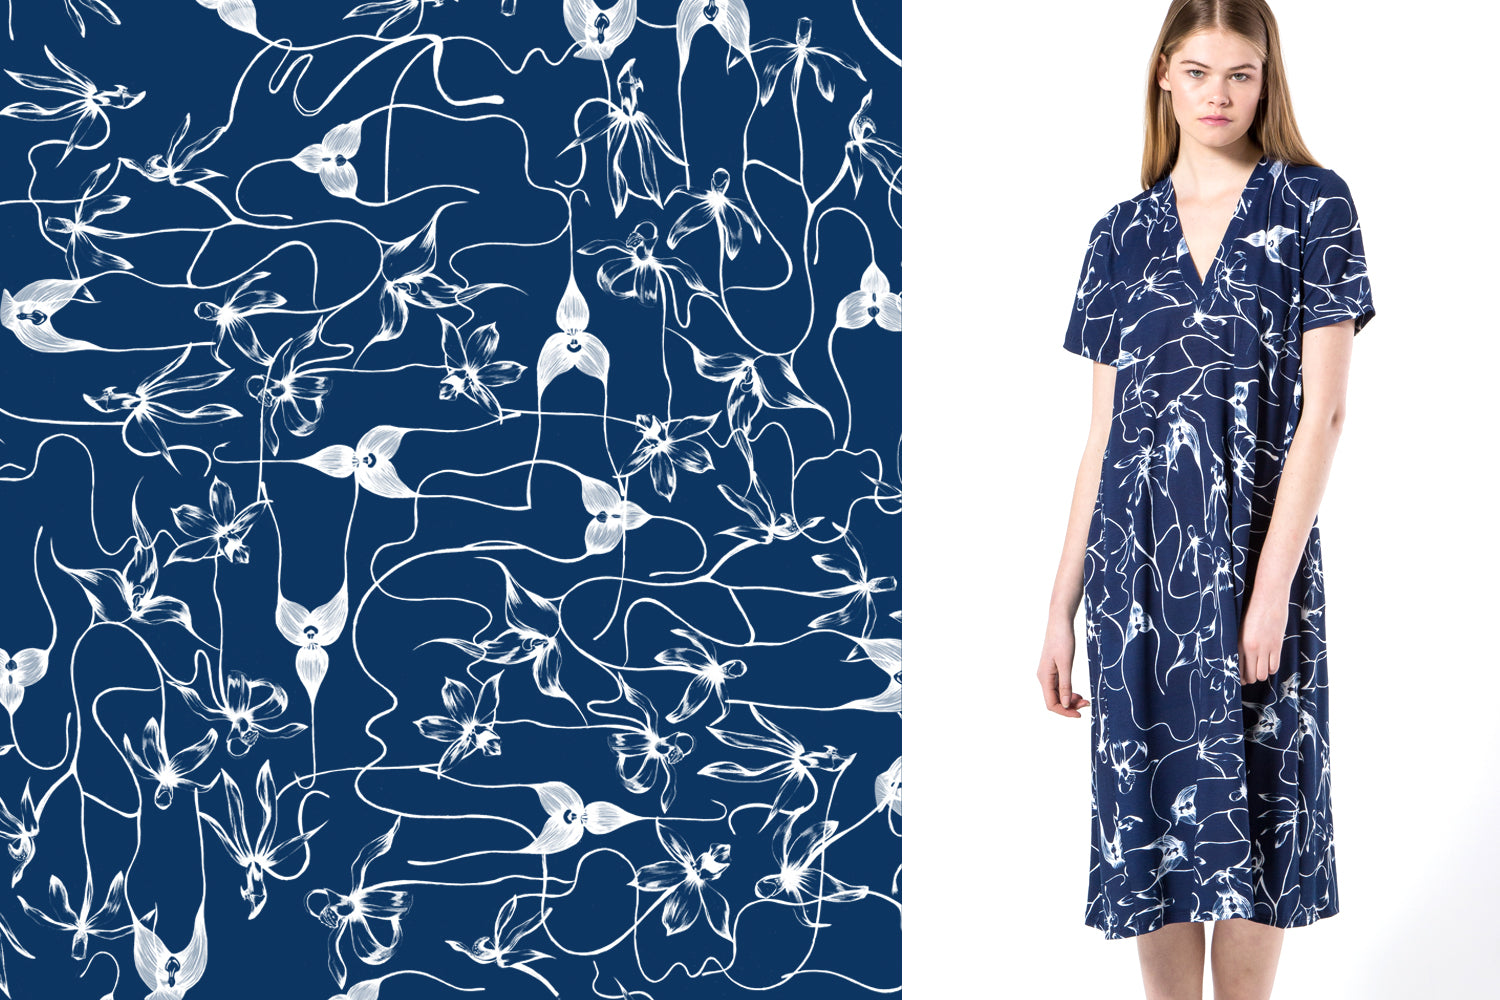 Melbourne botanical illustrator Kelly Thompson textile print design for BLAK clothing New Zealand